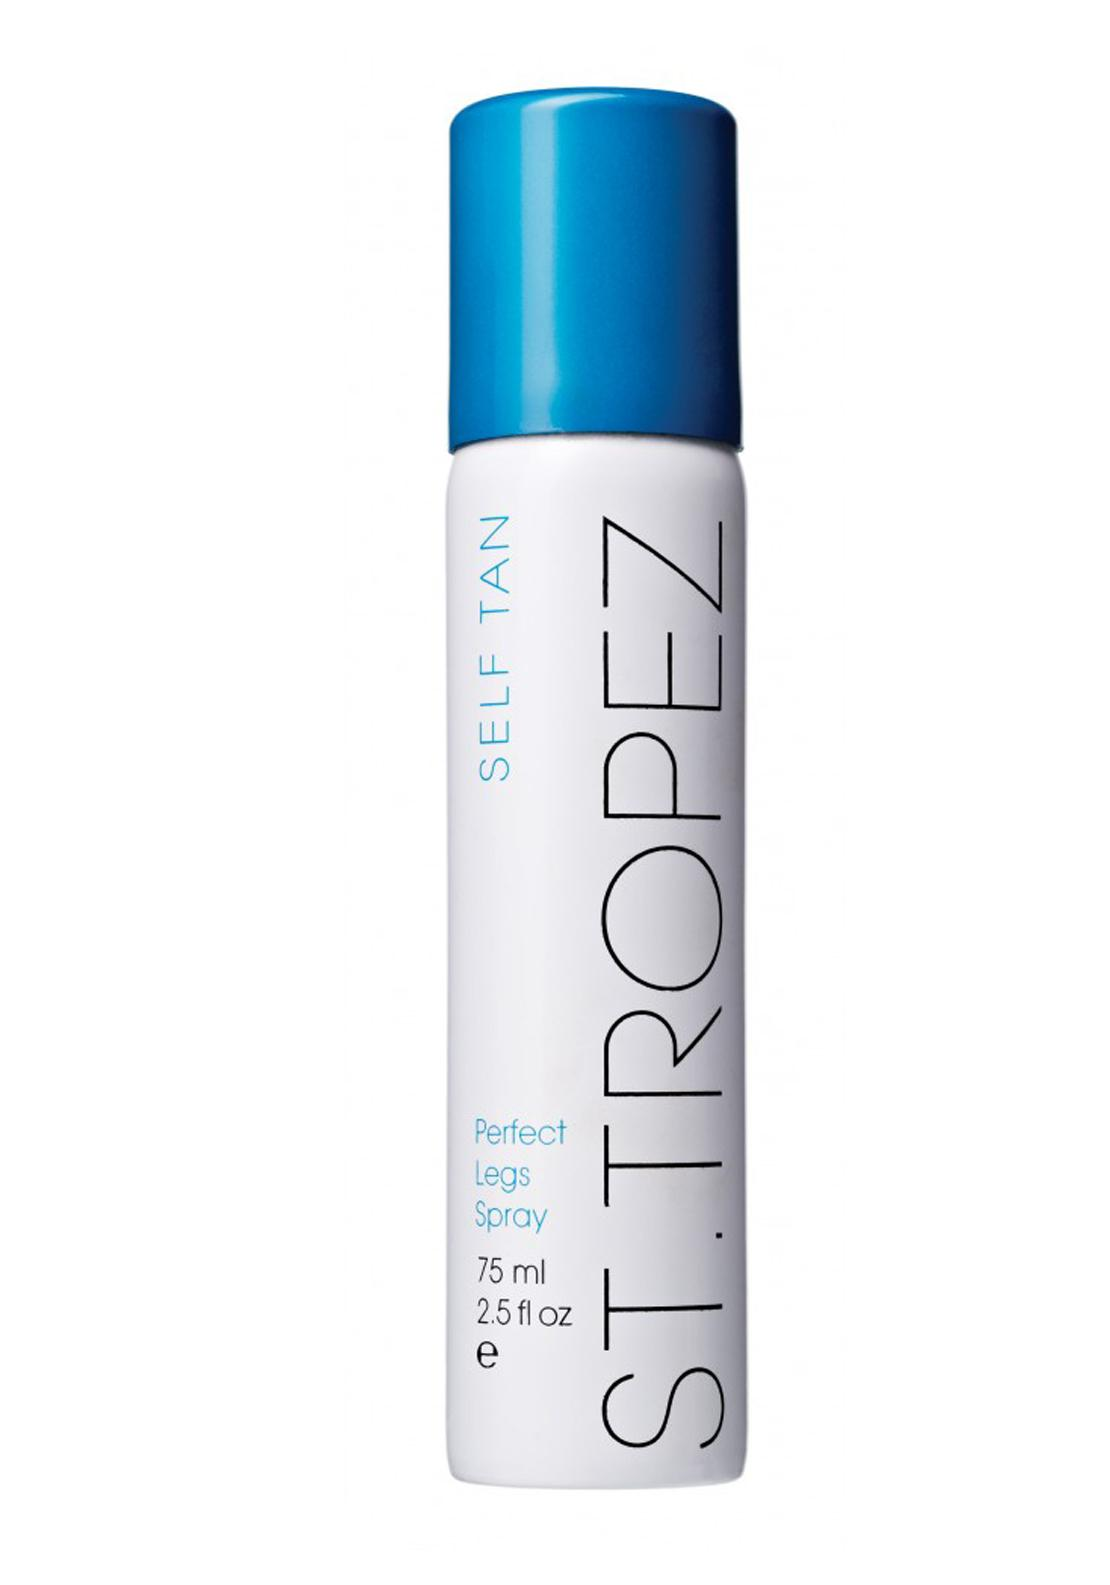 St. Tropez Self Tan Perfect Legs Spray